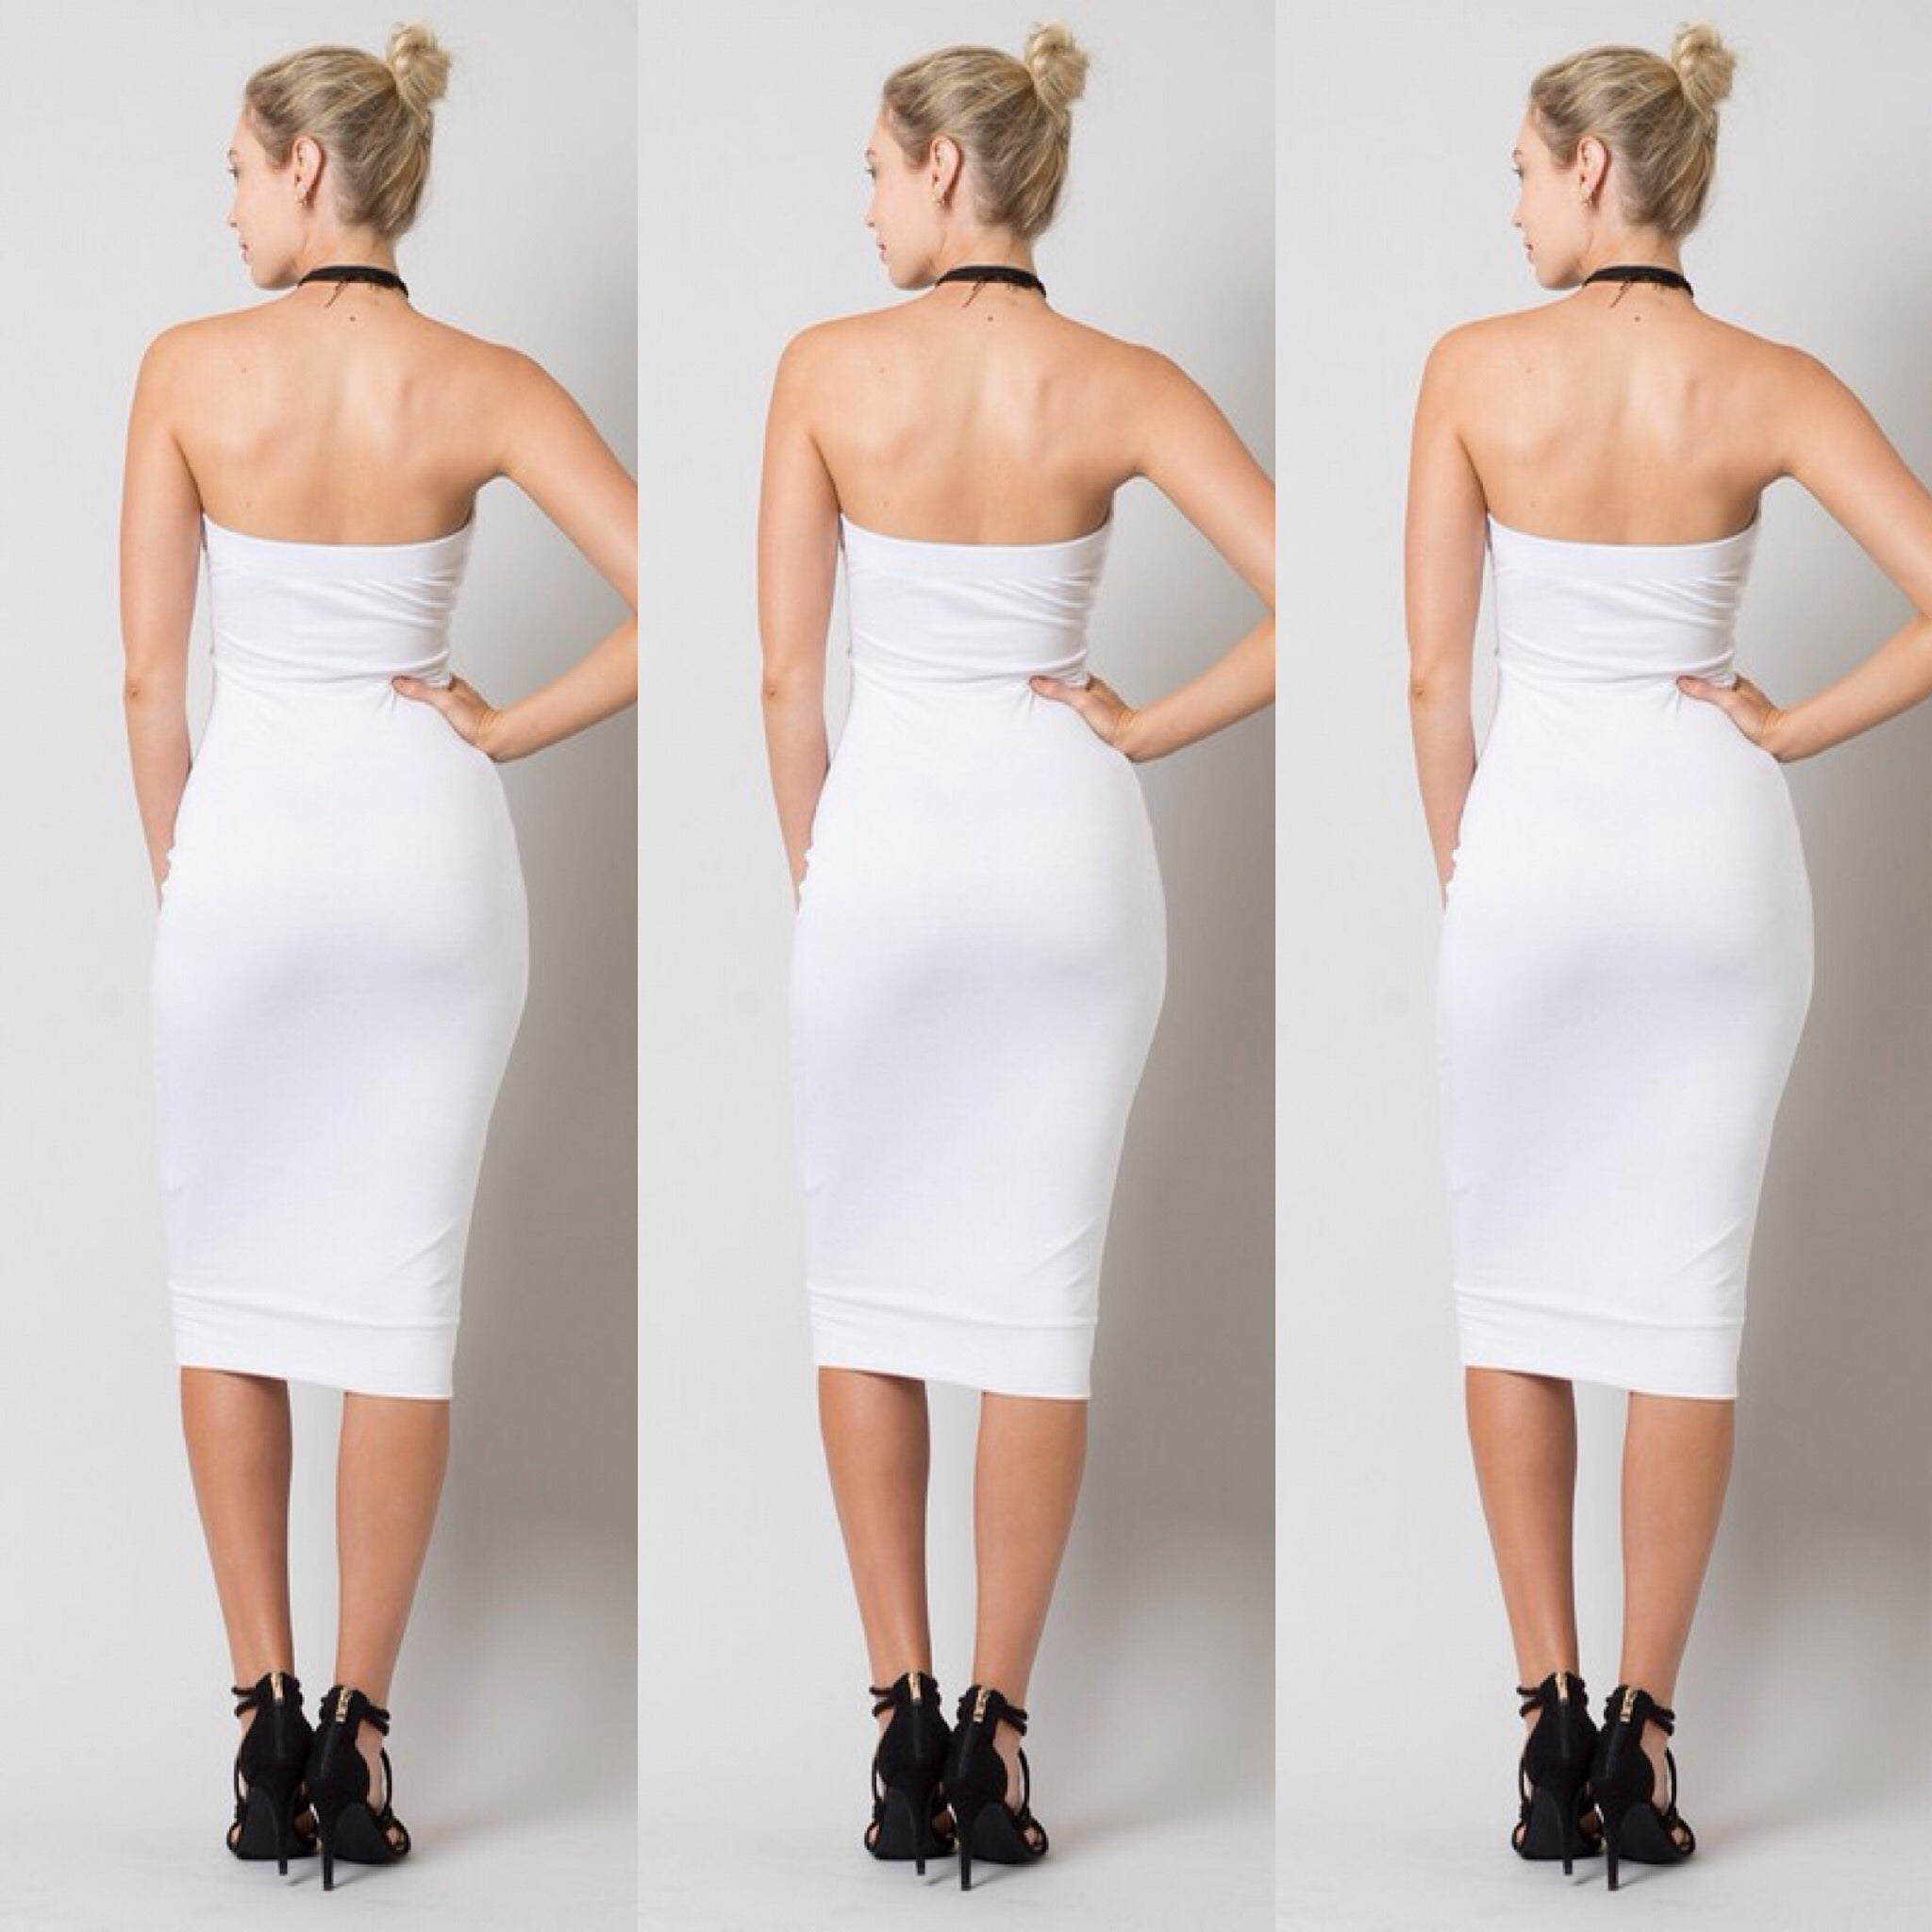 Buy Strapless White Plus Size Tube Top Dress at Social Butterfly ...